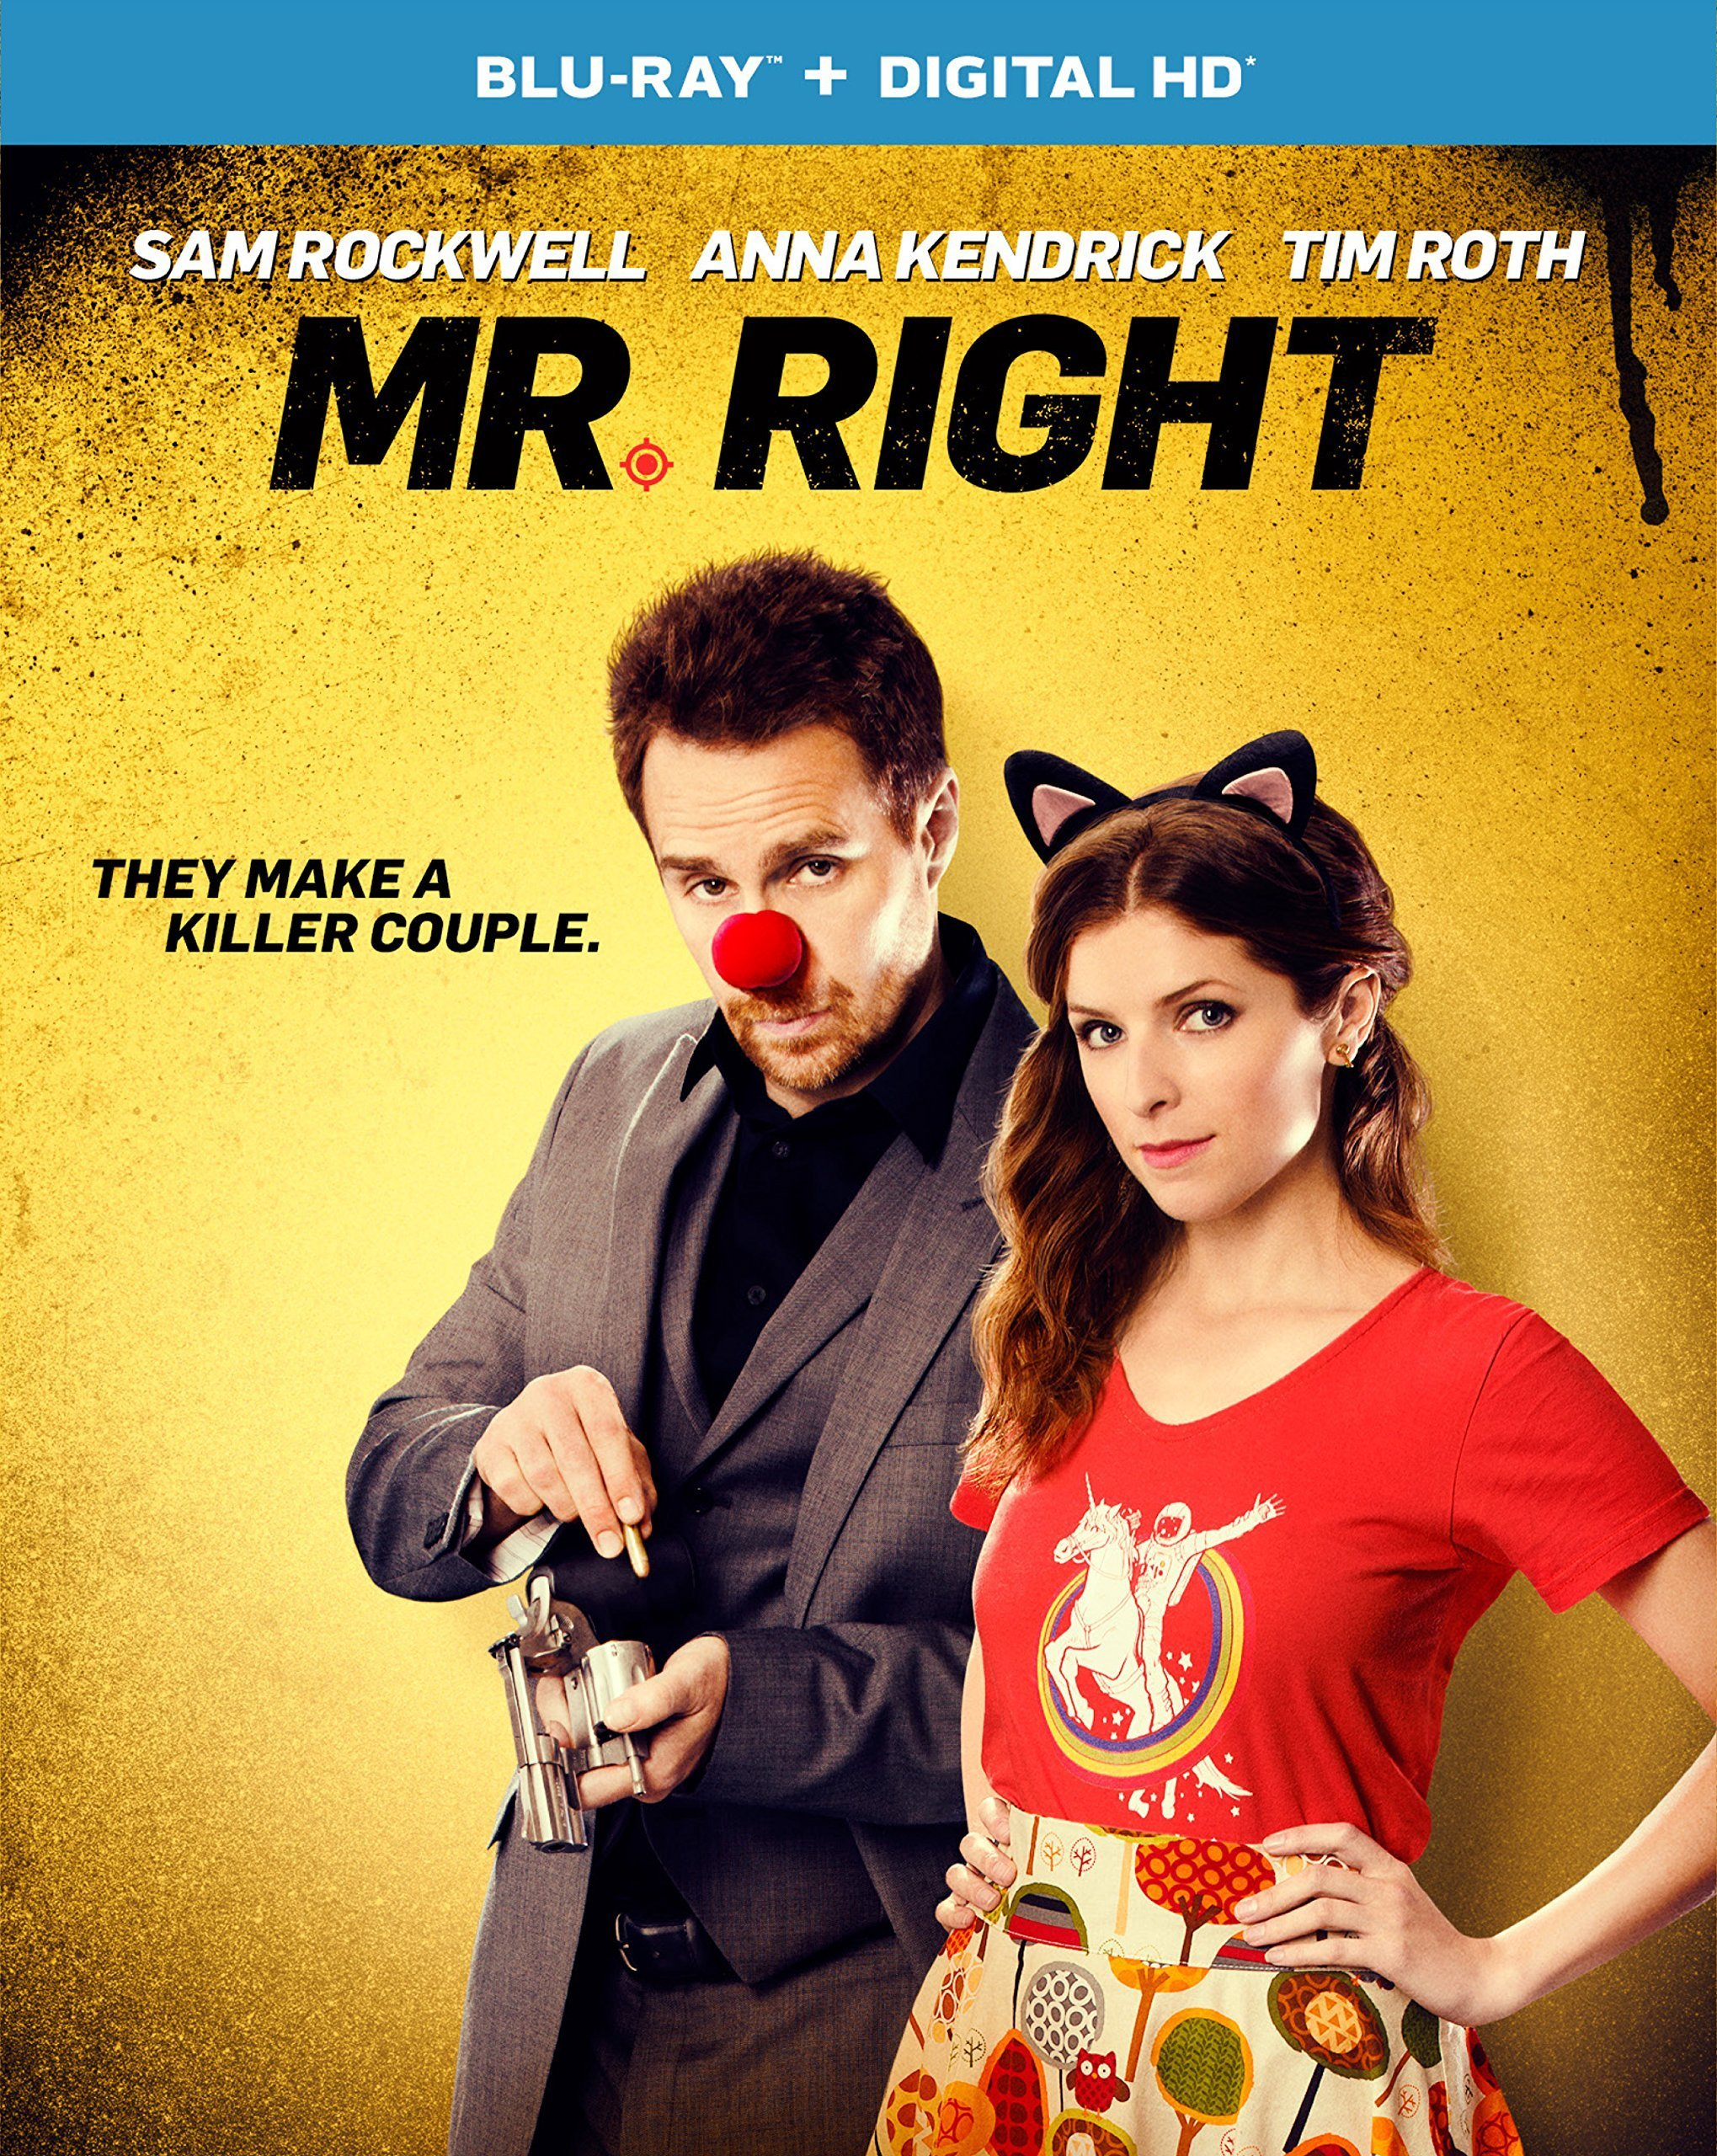 Mr. Right Blu-ray Review